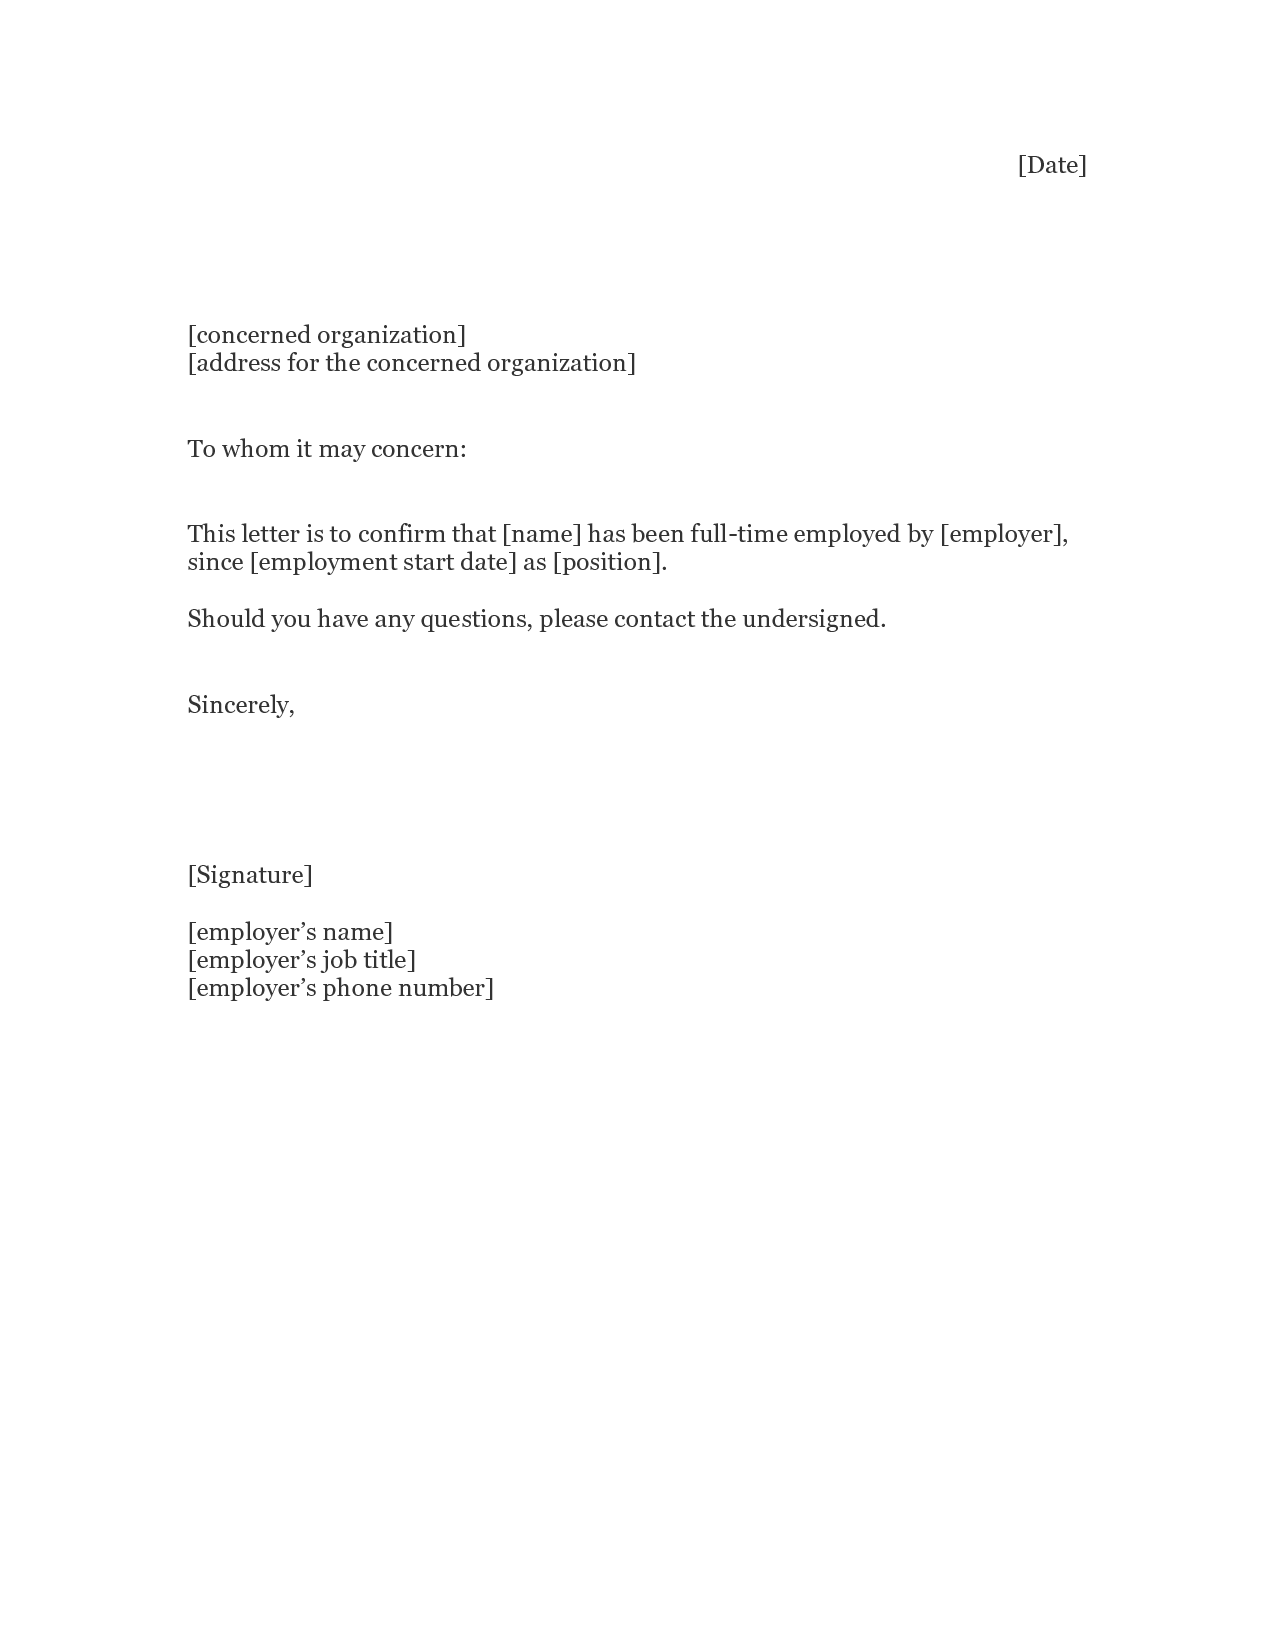 employment proof letters template employment proof letters